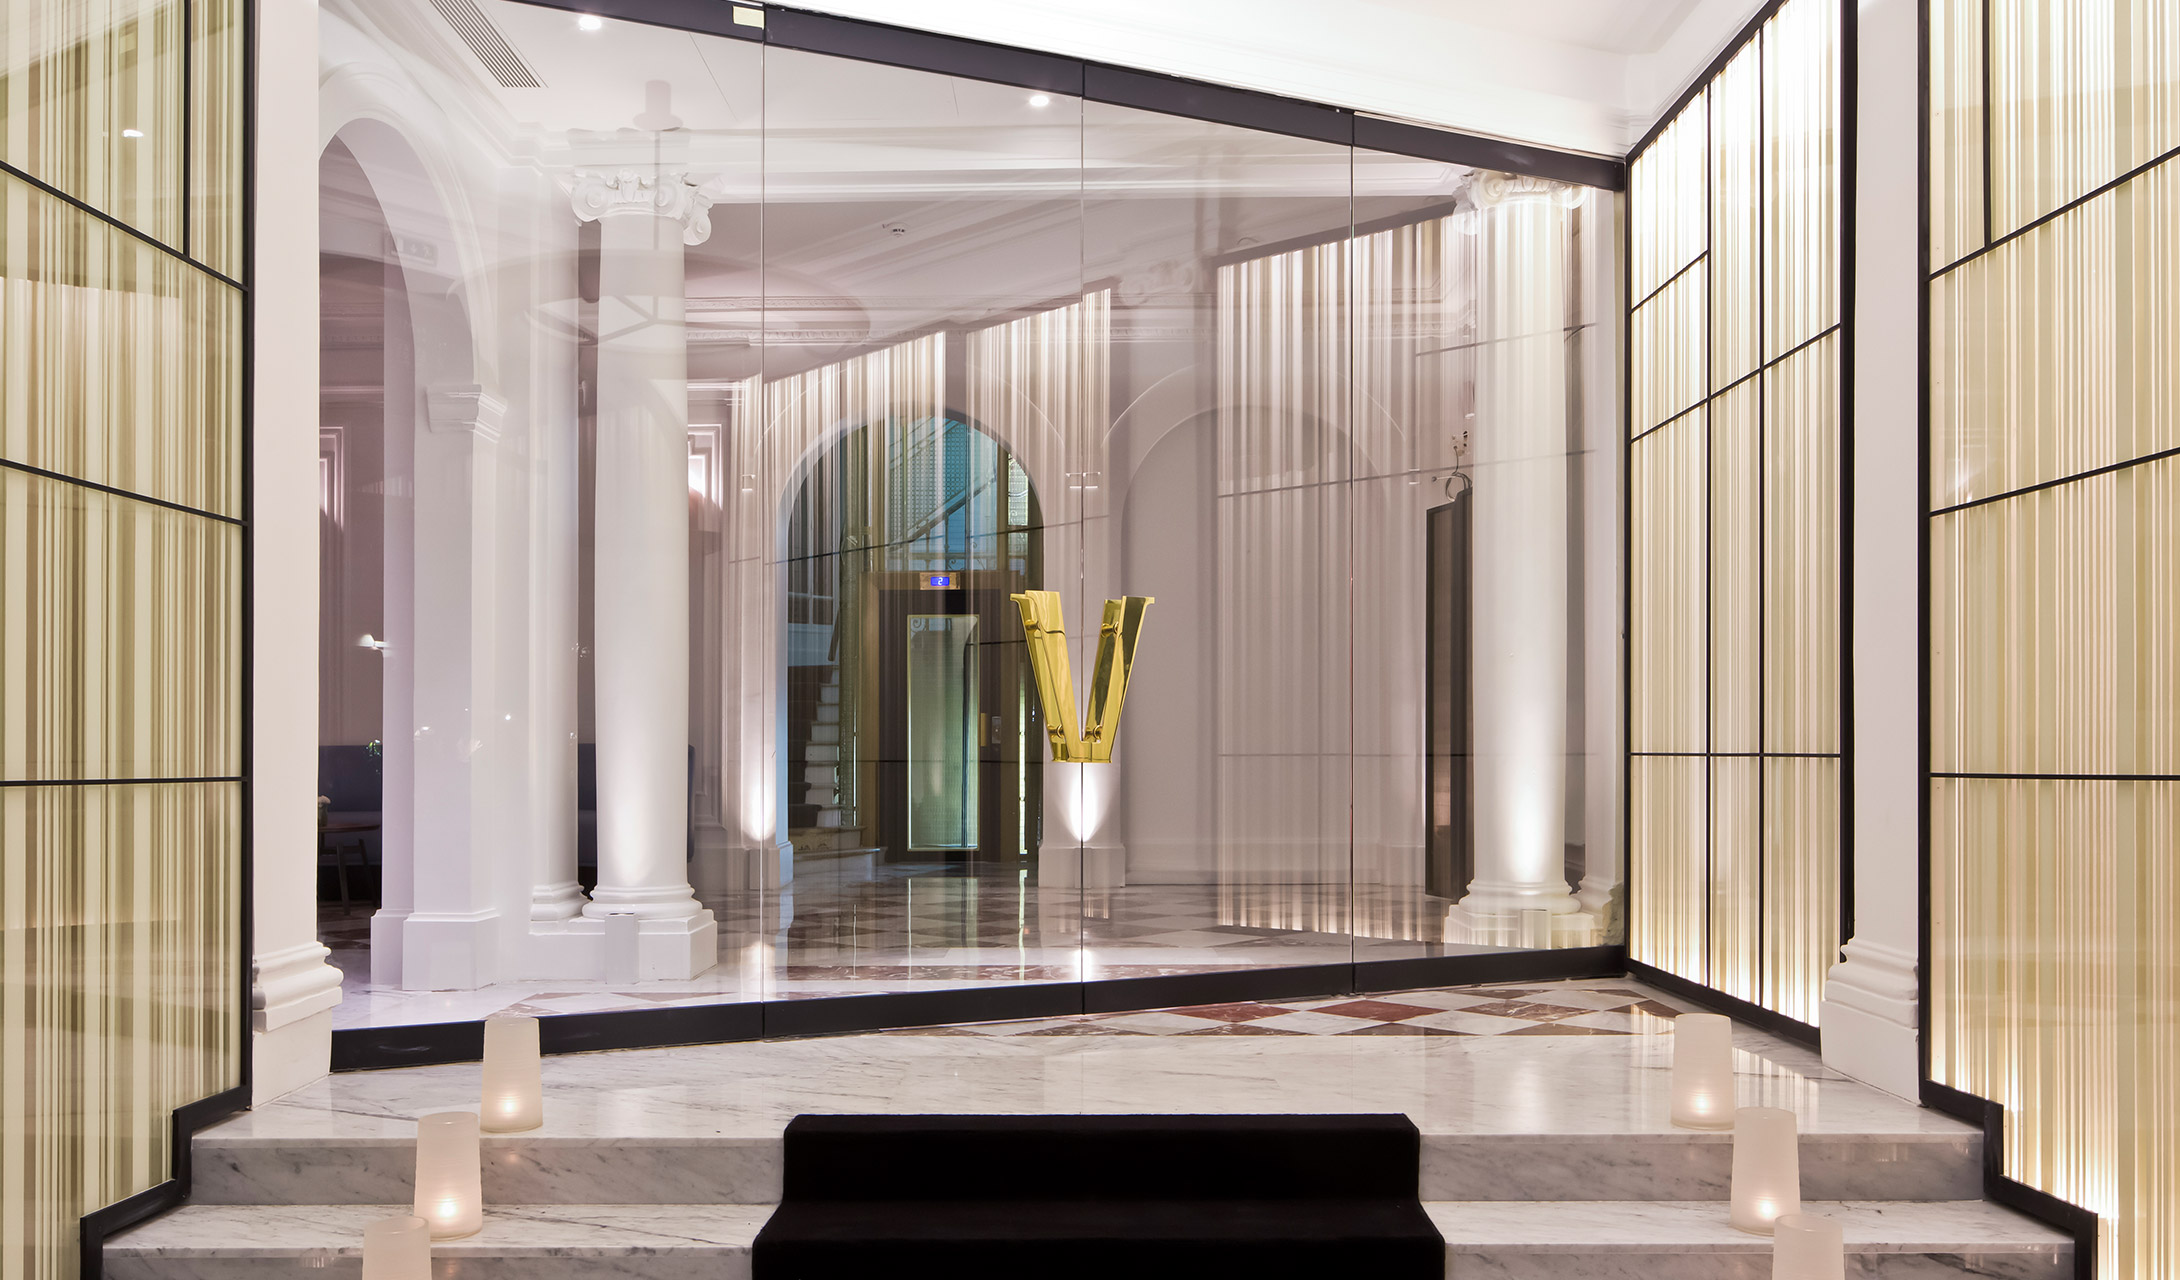 Hotel vernet champs elys es paris france design hotels for Hotel design original paris